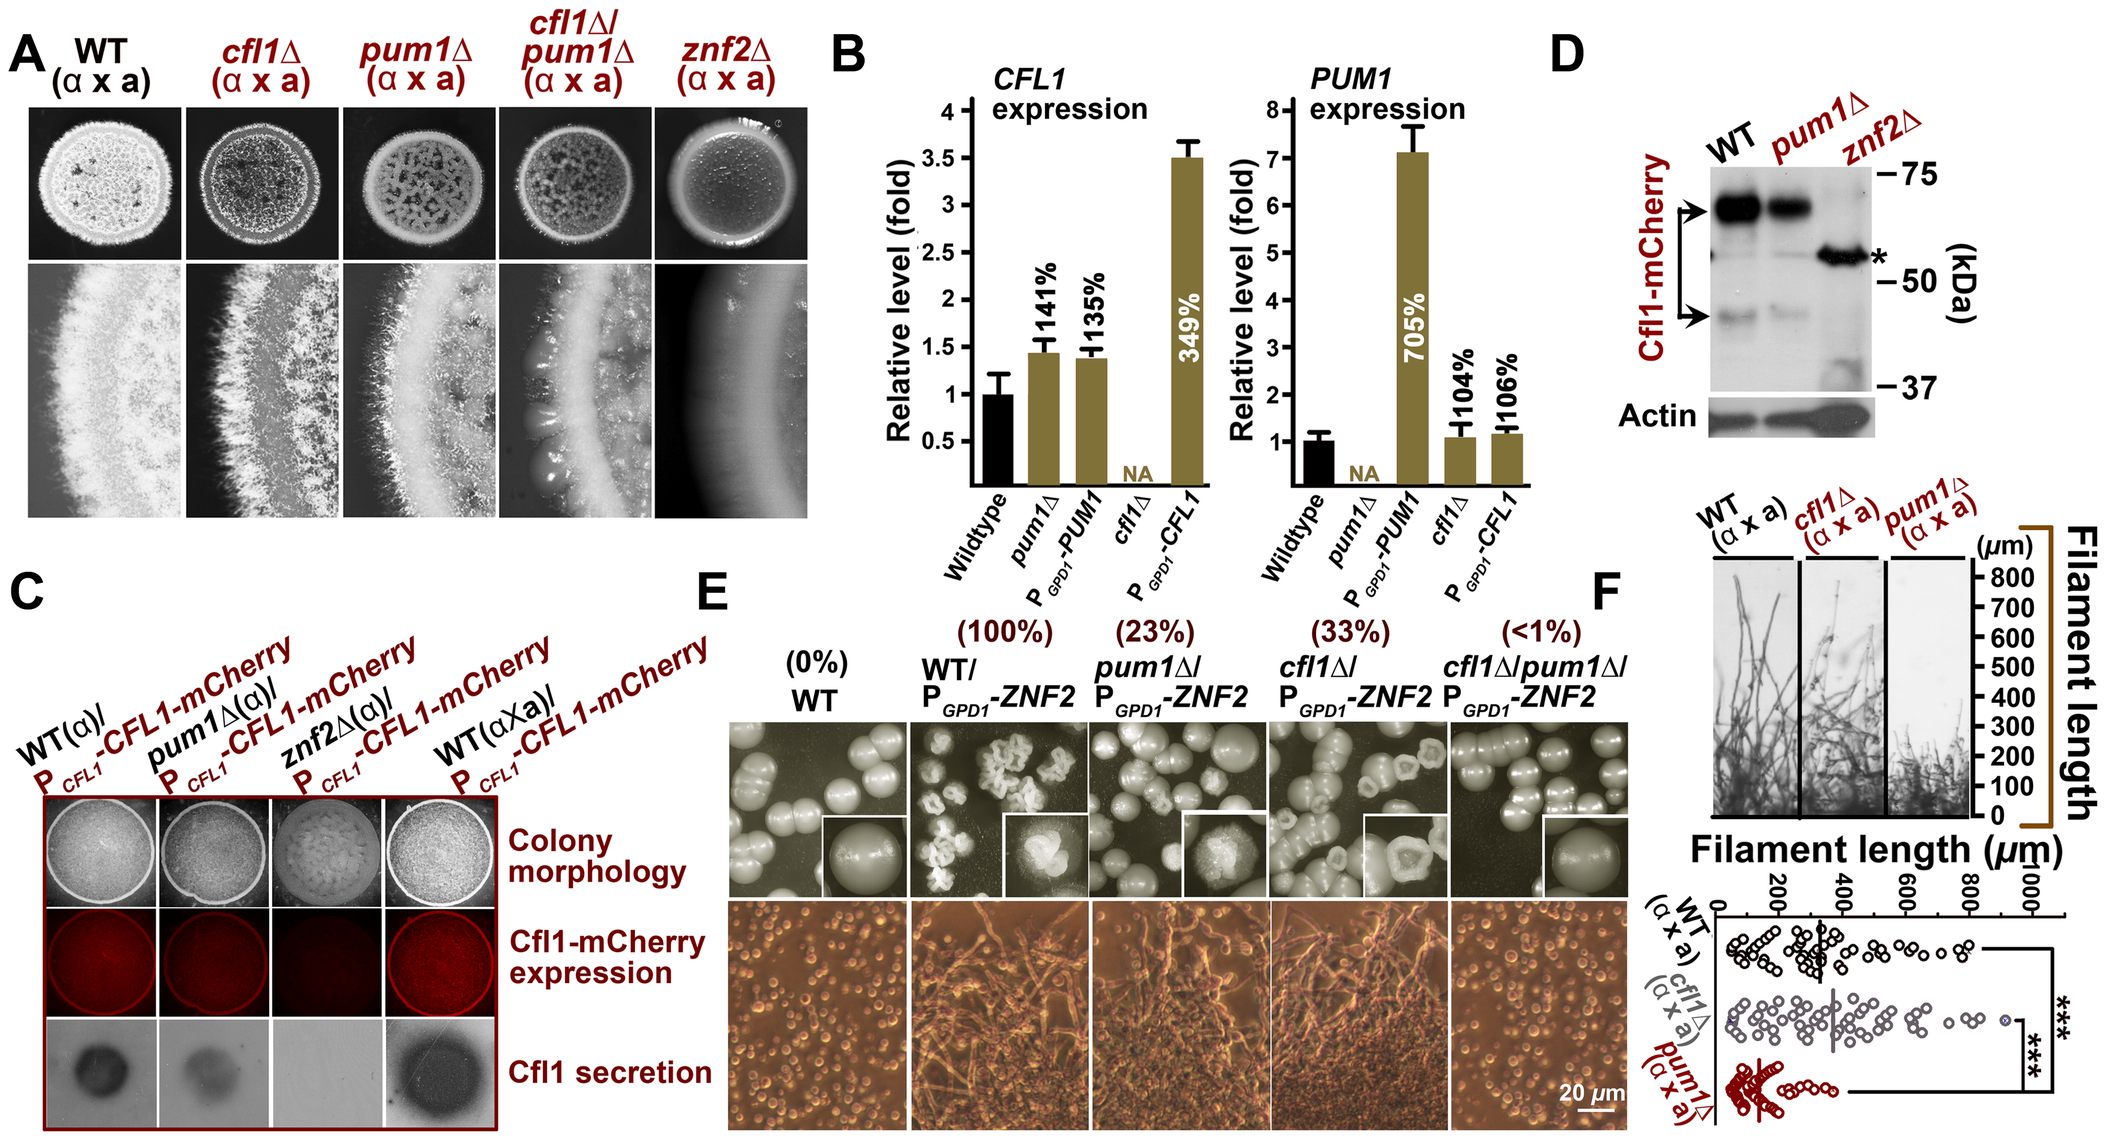 Cfl1 and Pum1 represent two major circuits downstream of Znf2 in directing aerial hyphae formation.